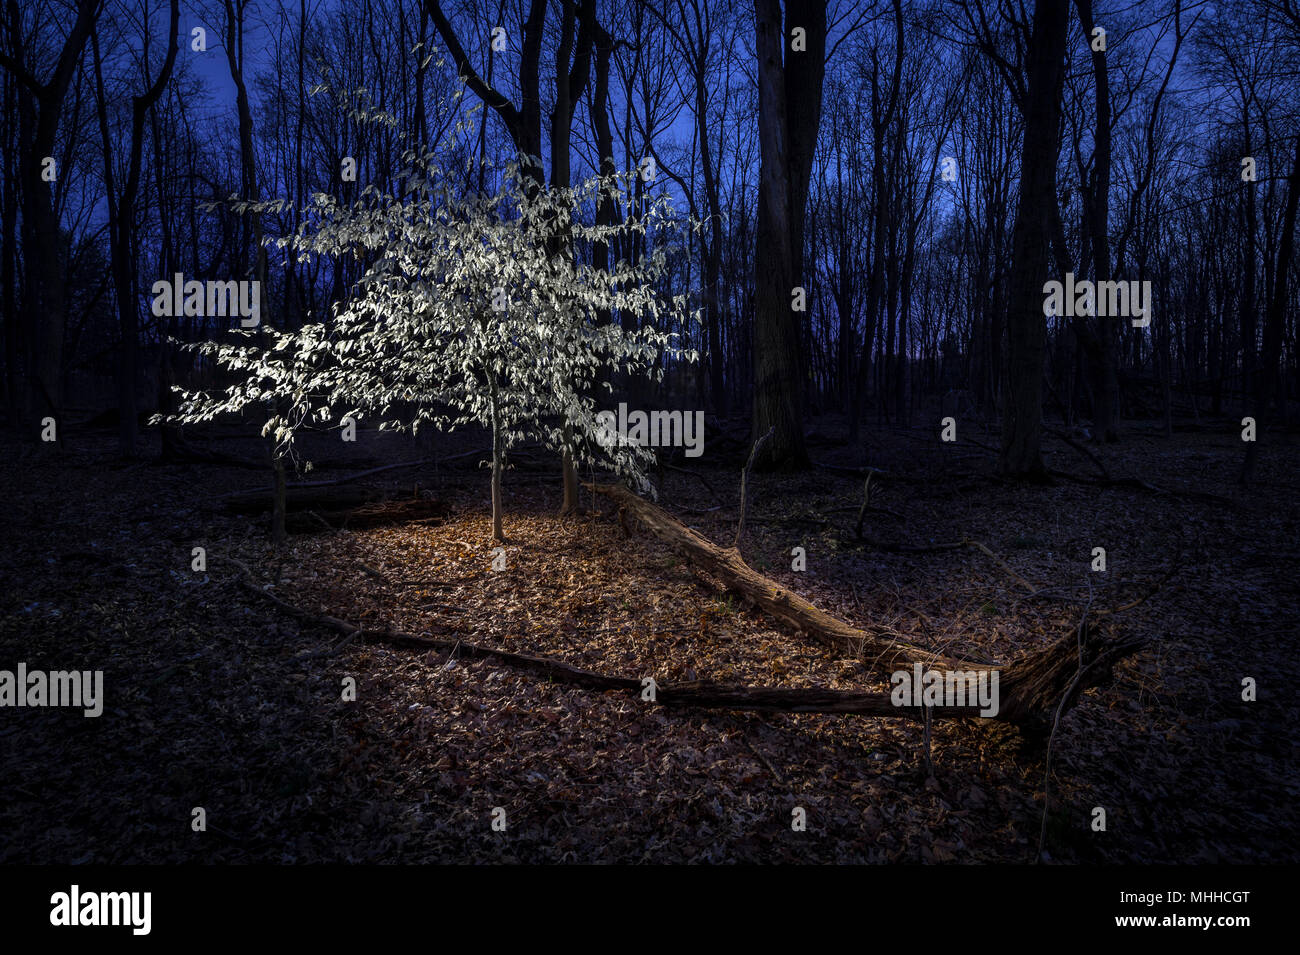 Marcescent Beech Tree In Winter At Night - Stock Image